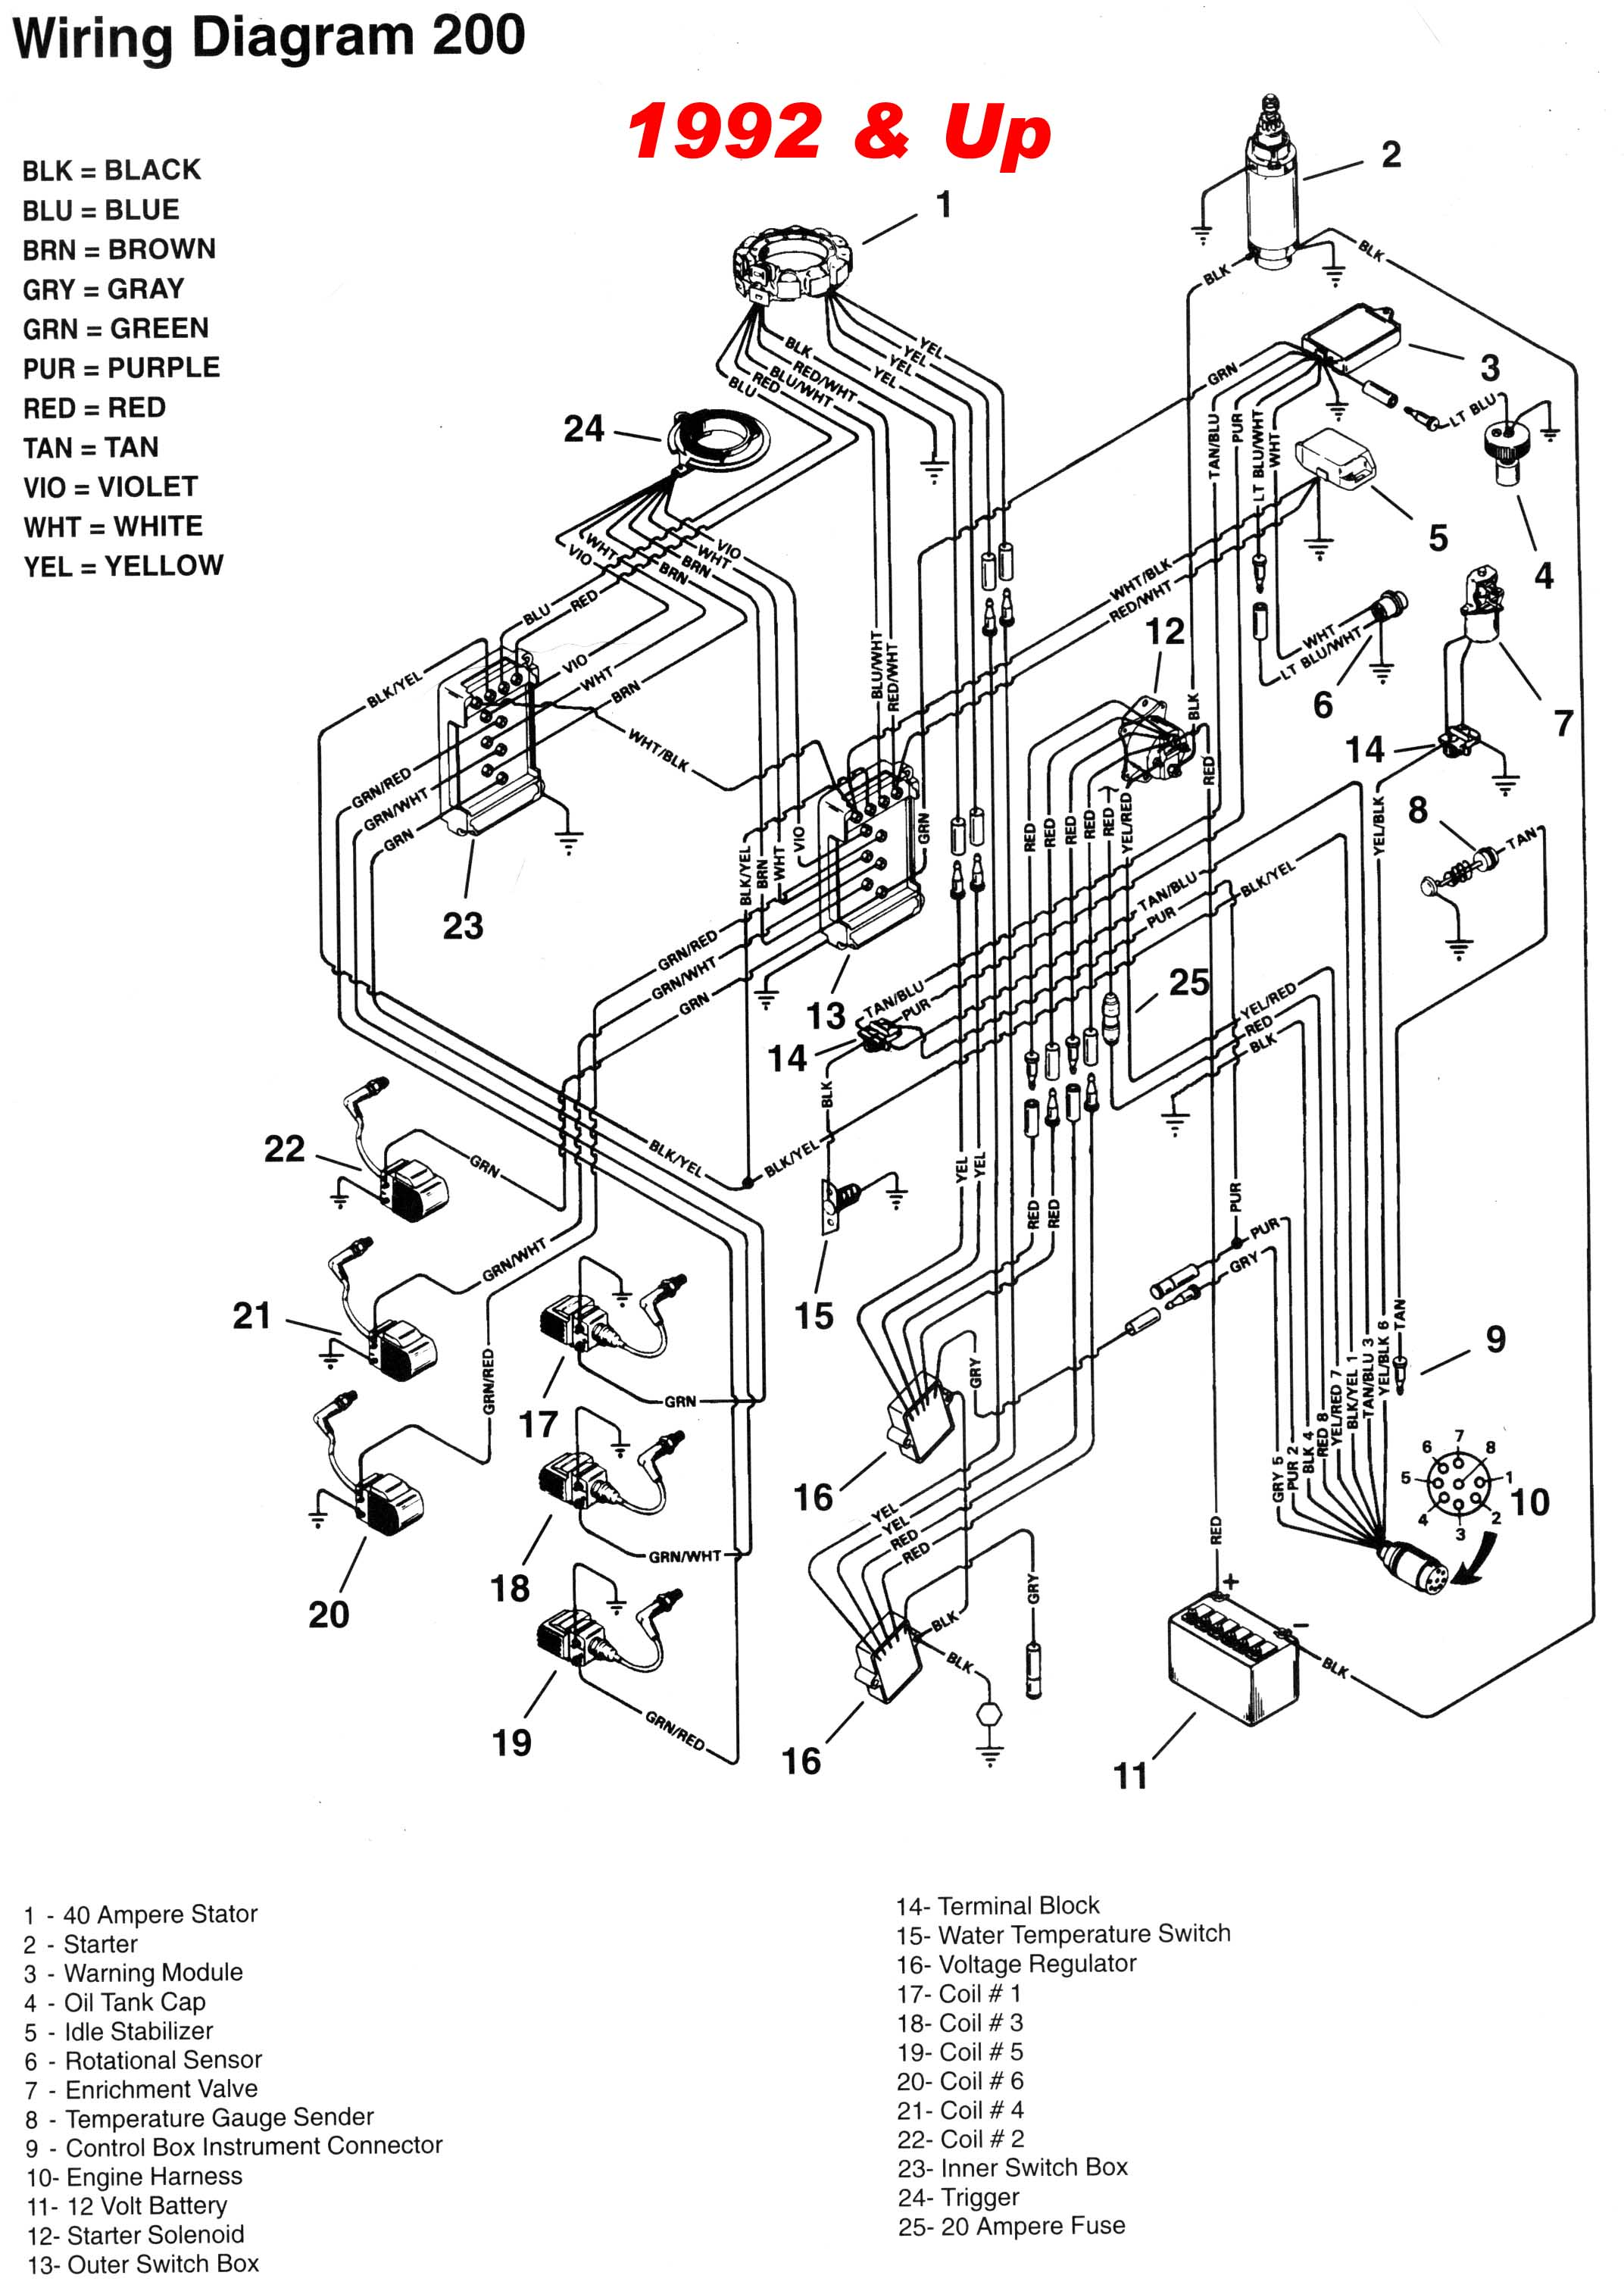 70 Hp Mercury Outboard Control Box Wiring Diagram